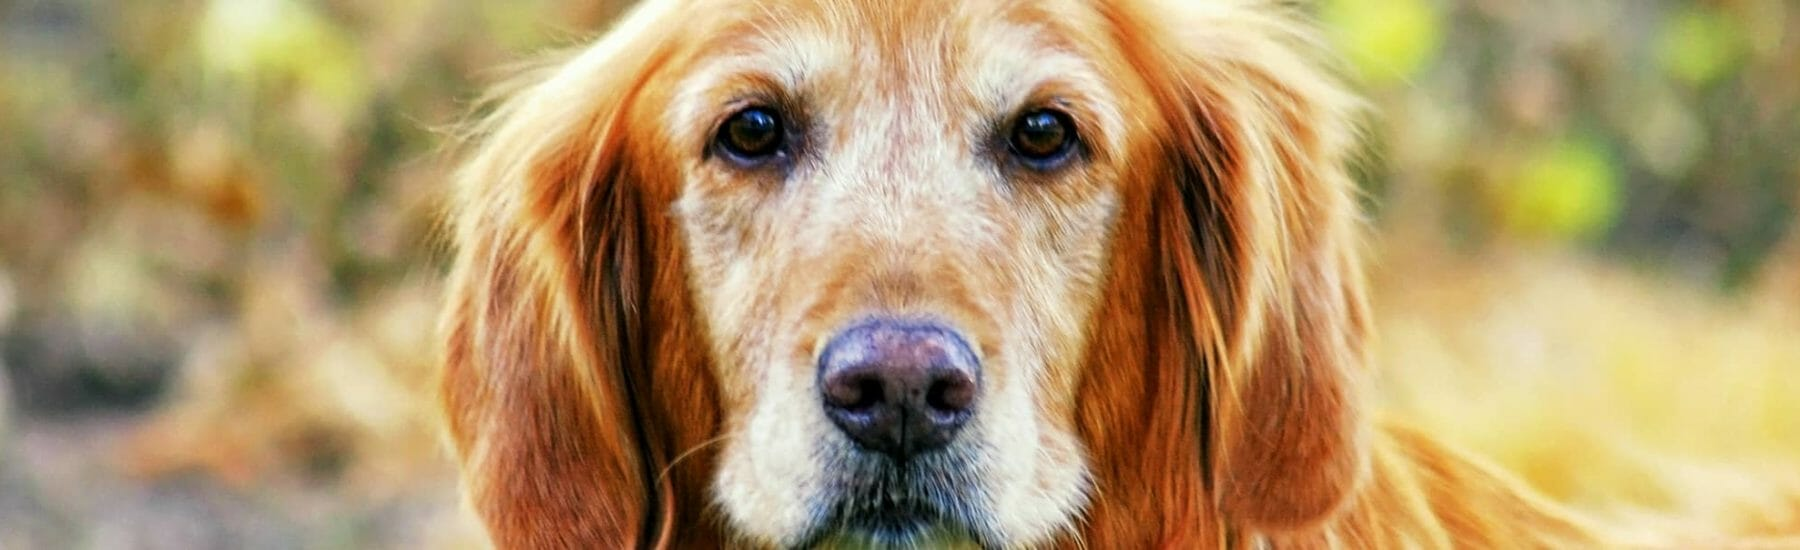 Cardiology Services for Pets